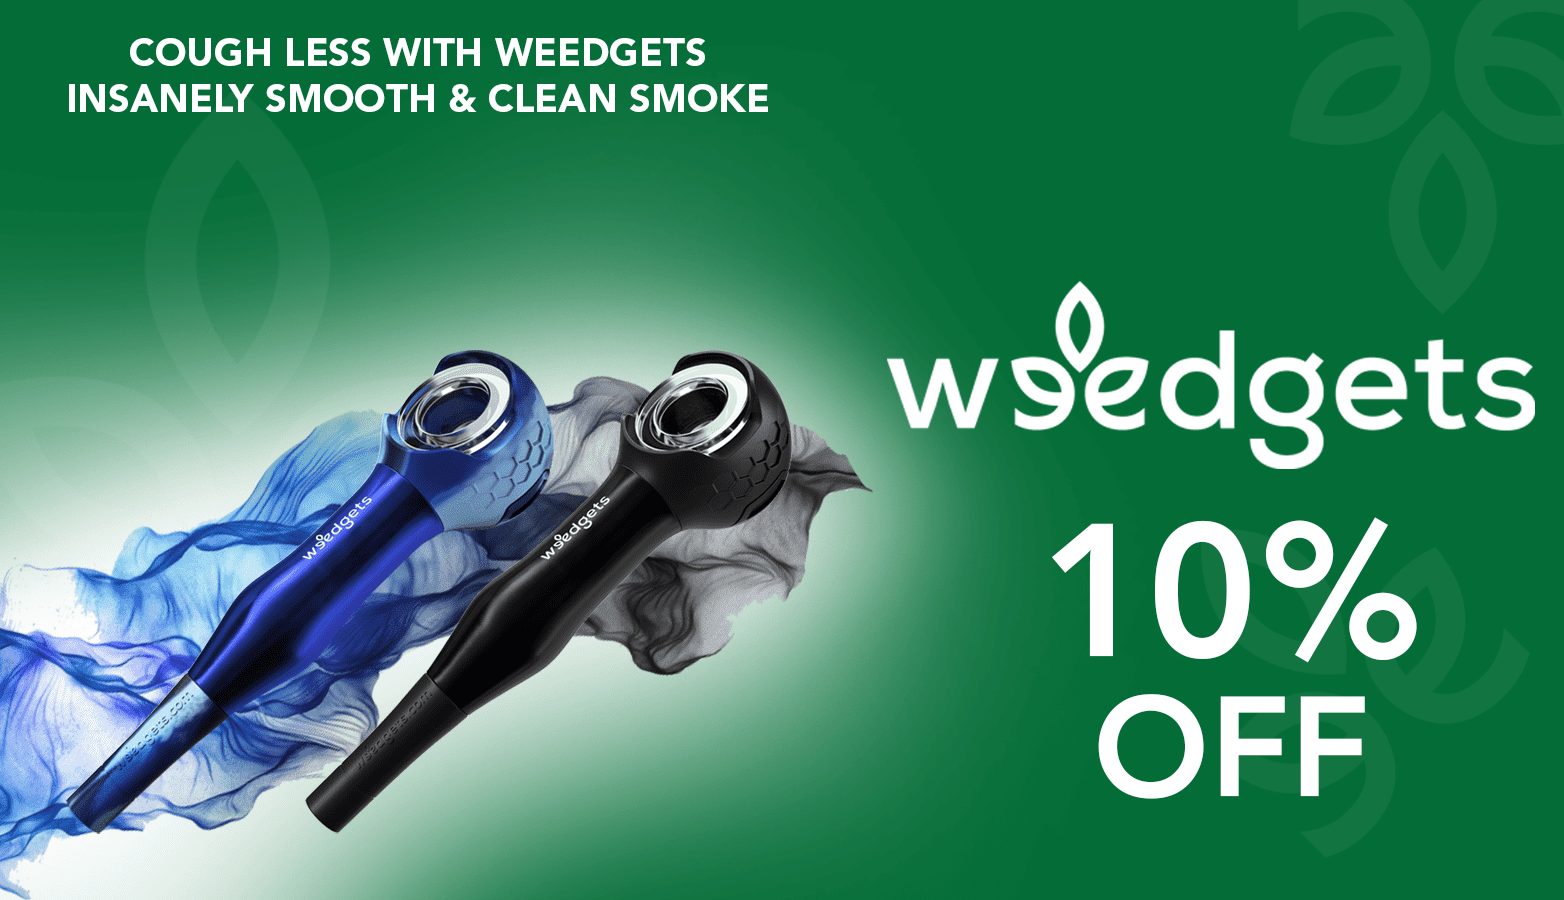 Save with WeedGets coupon codes